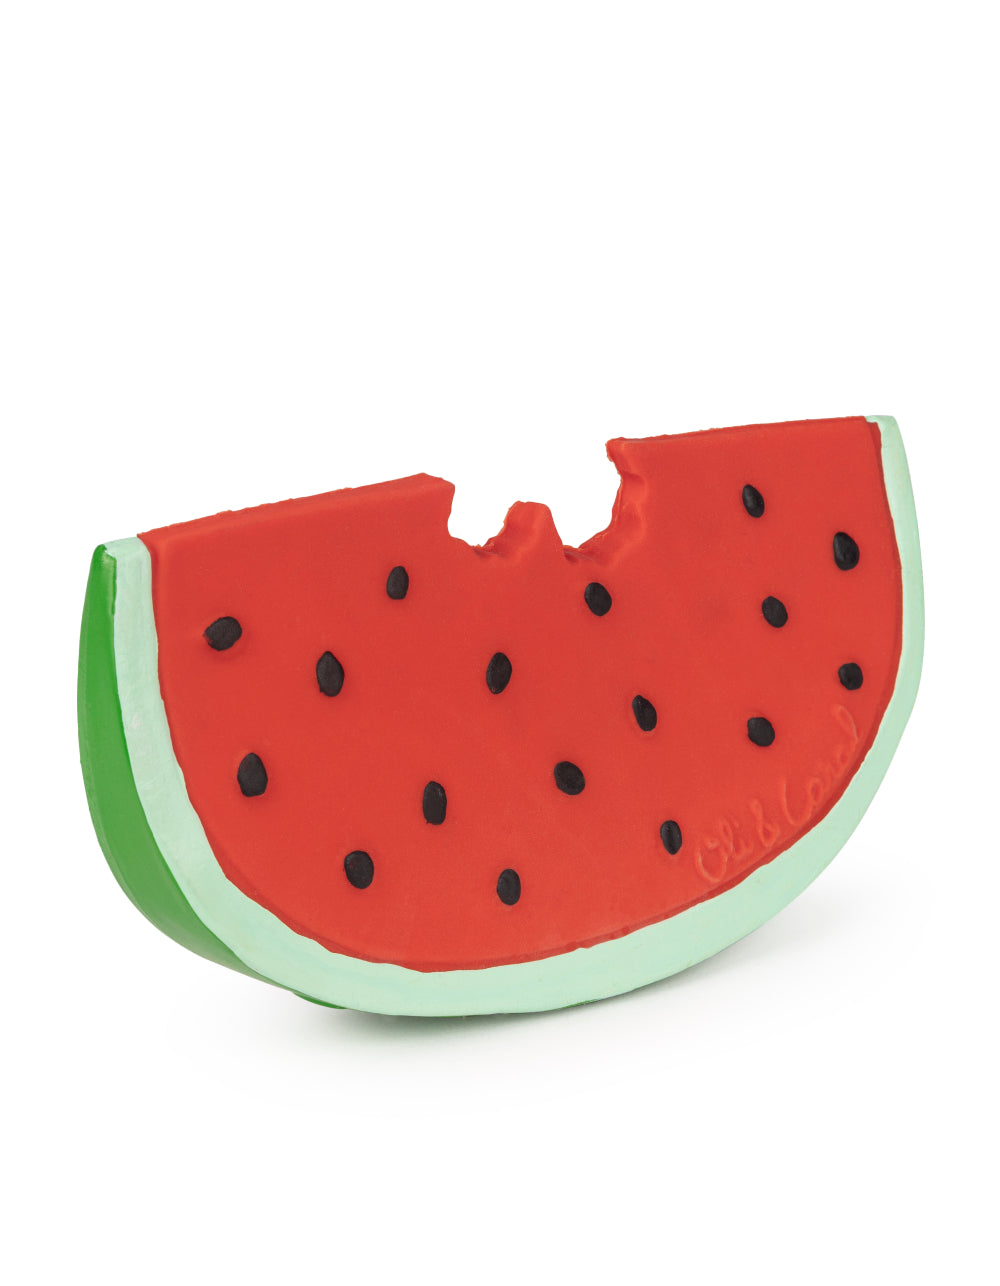 oli&carol natural rubber toy Wally The Watermelon